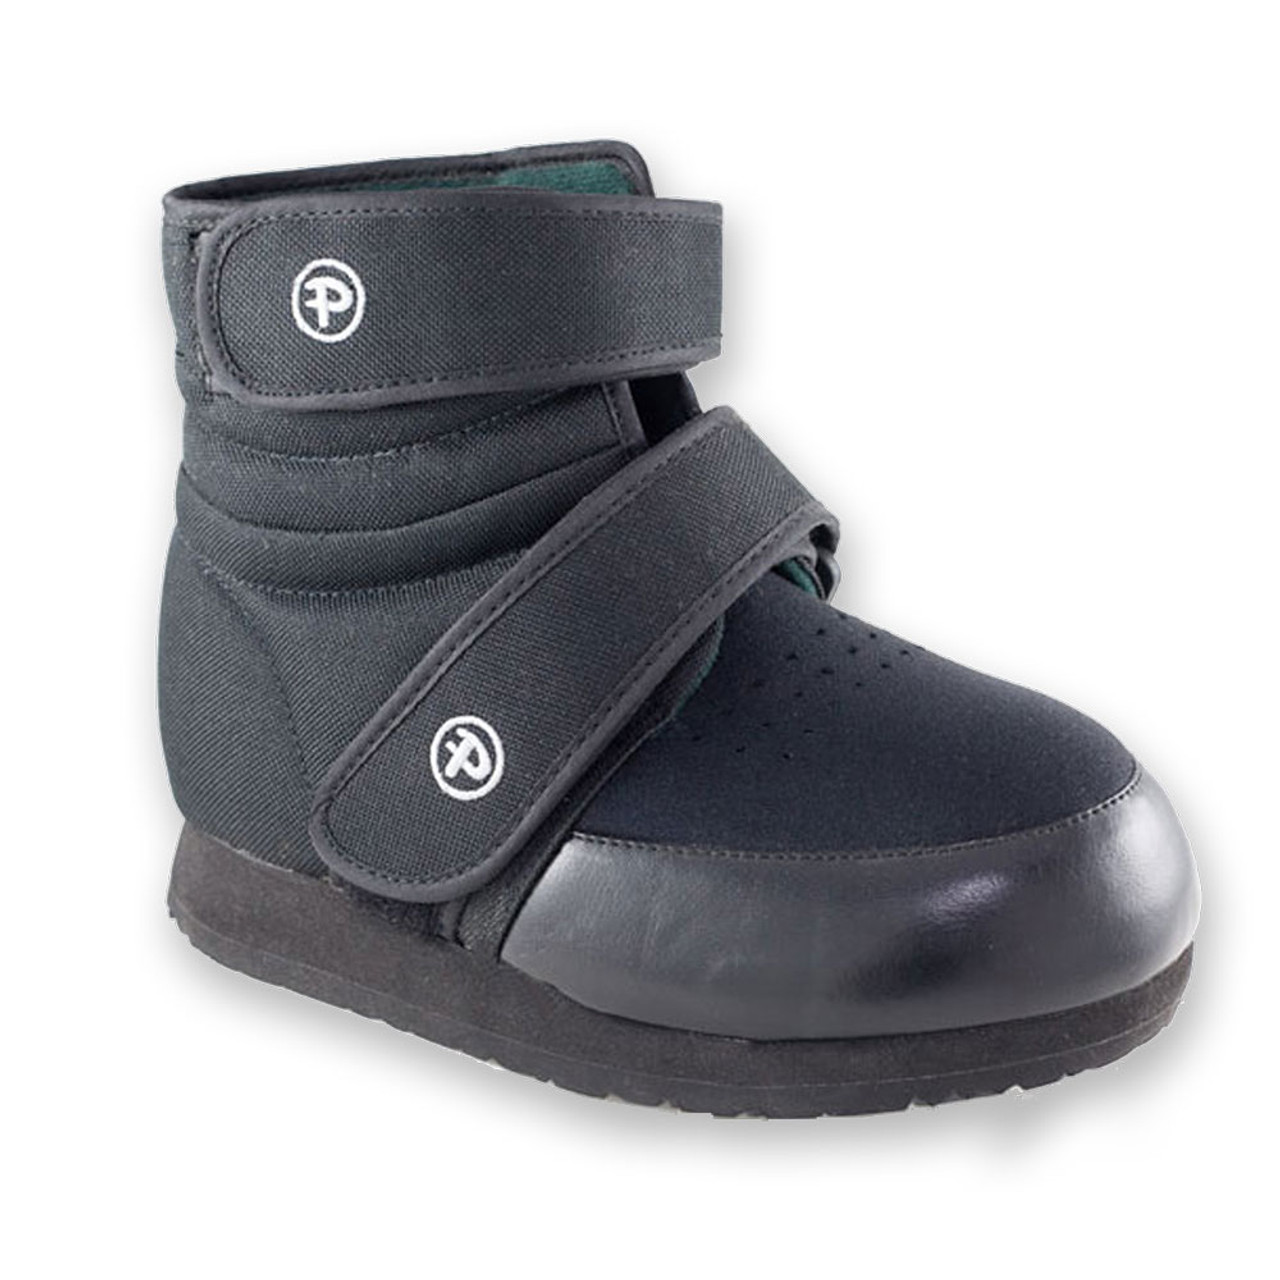 7f924f8e50 Orthopedic Boots For Swollen Feet High Top Style by Pedors